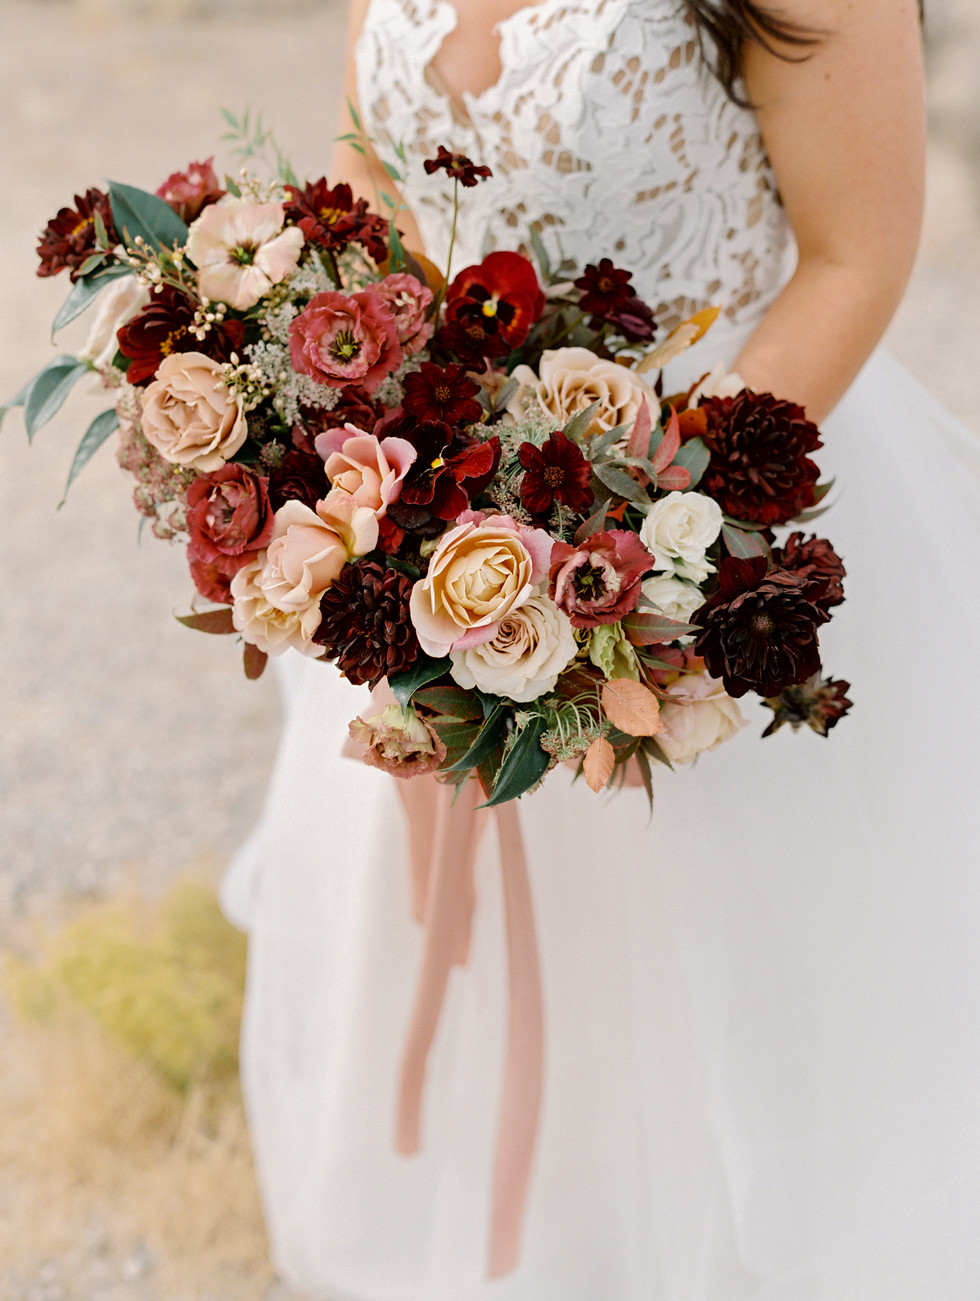 Burgundy, mauve and nude bridal bouquet with roses, dahlias, lisianthus, pansies, and chocolate cosmos. Photo: Gaby Jeter